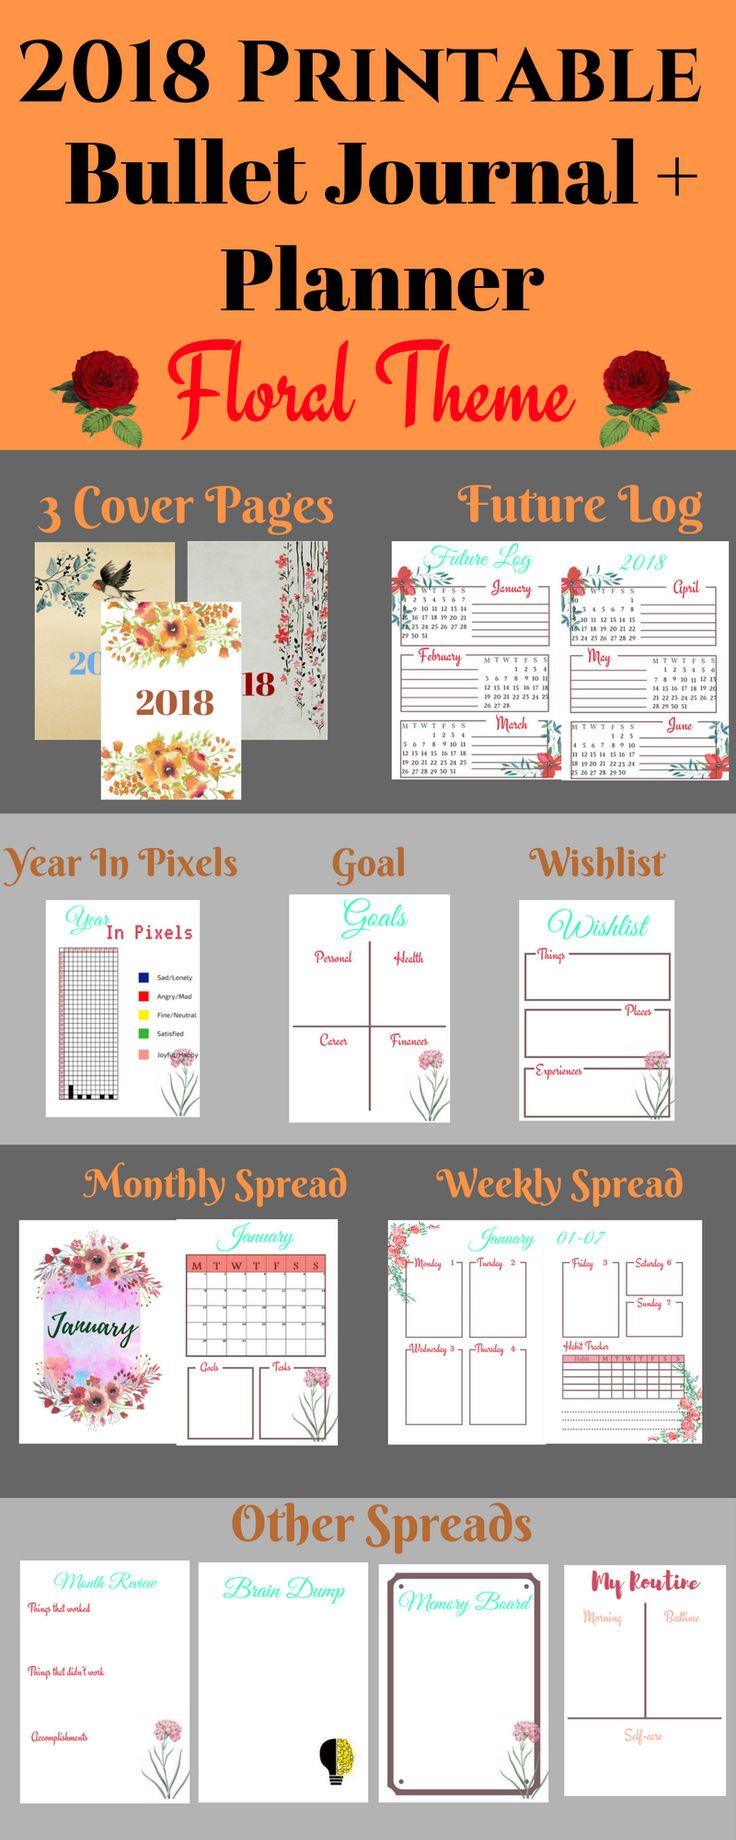 Printable Bullet Journal | Bullet Journal Prints | 2018 Planner | 2018 Bullet Journal | Future log | year in pixels | yearly spread | monthly spread | weekly spread | monthly review